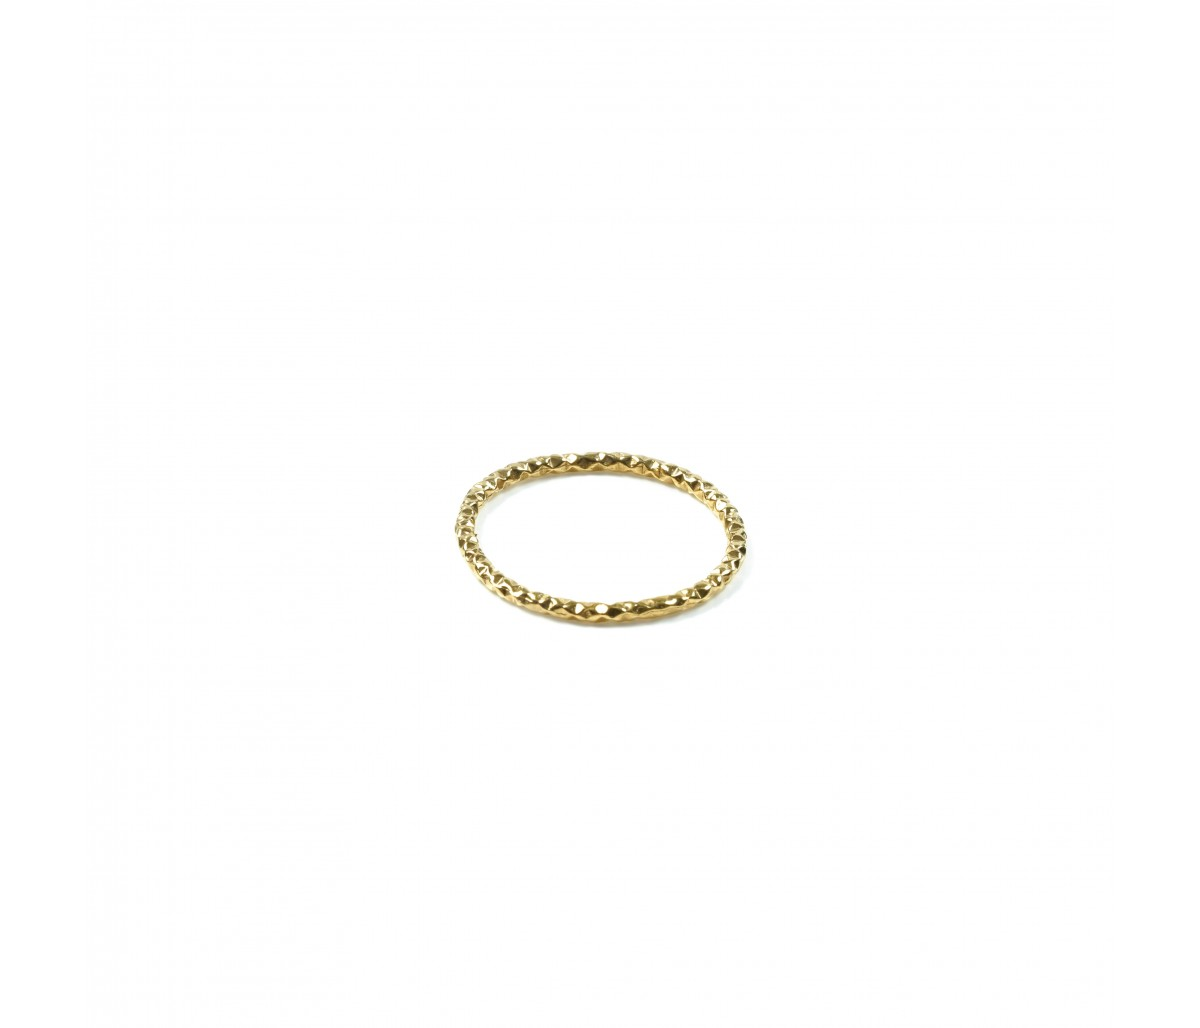 Magy 19k gold ring